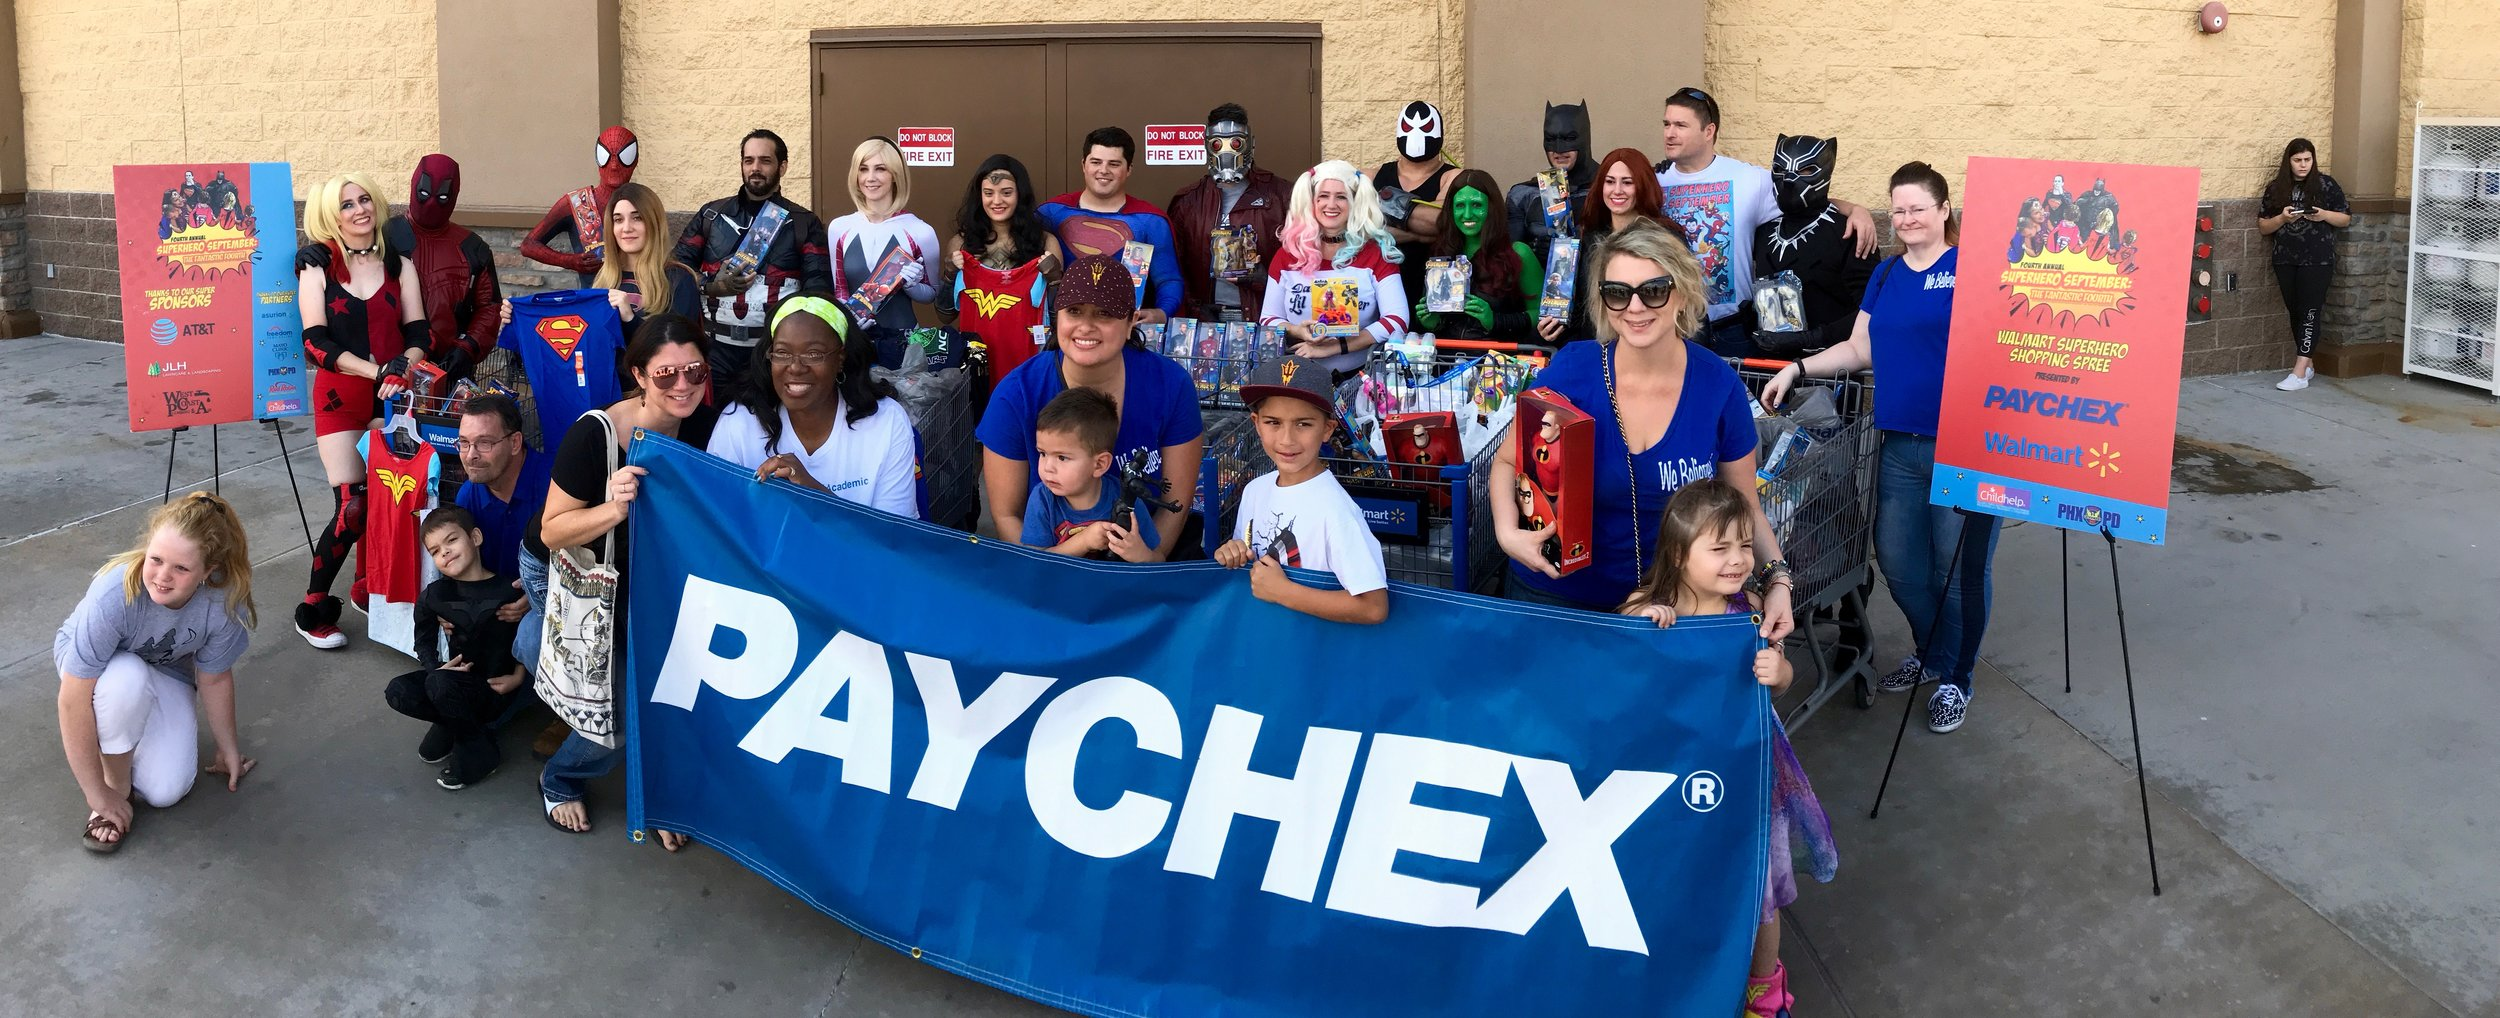 Paychex Shopping Spree